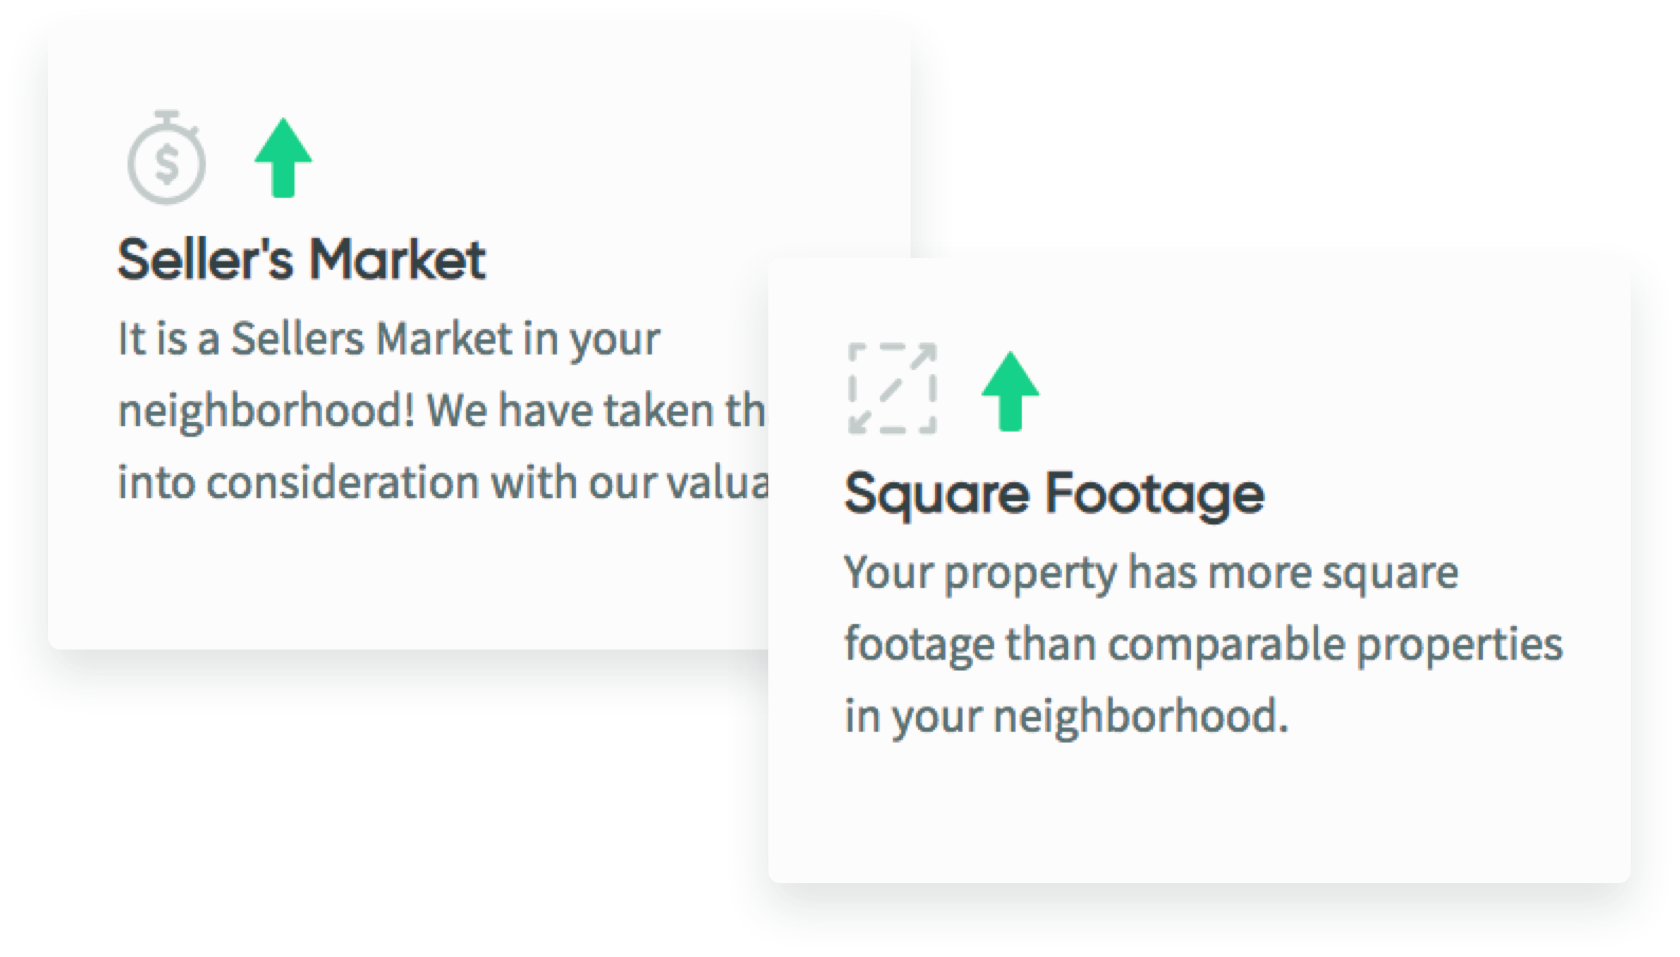 text boxes showing seller's market and square footage on it with green arrows pointing up